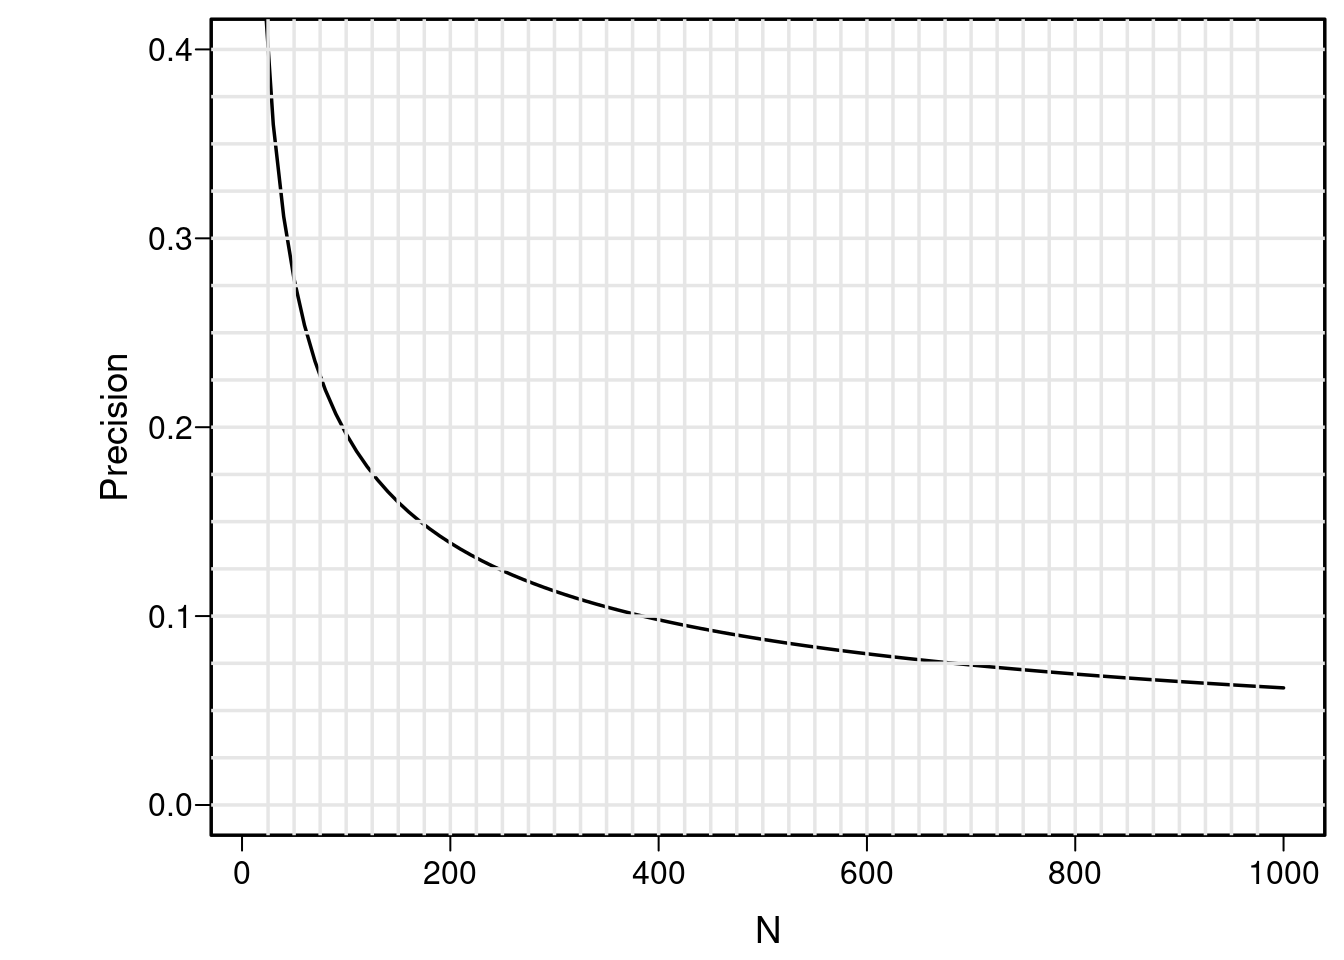 Margin for error (length of longer side of asymmetric 0.95 confidence interval) for r in estimating ρ, when ρ=0.  Calculations are based on the Fisher z transformation of r.